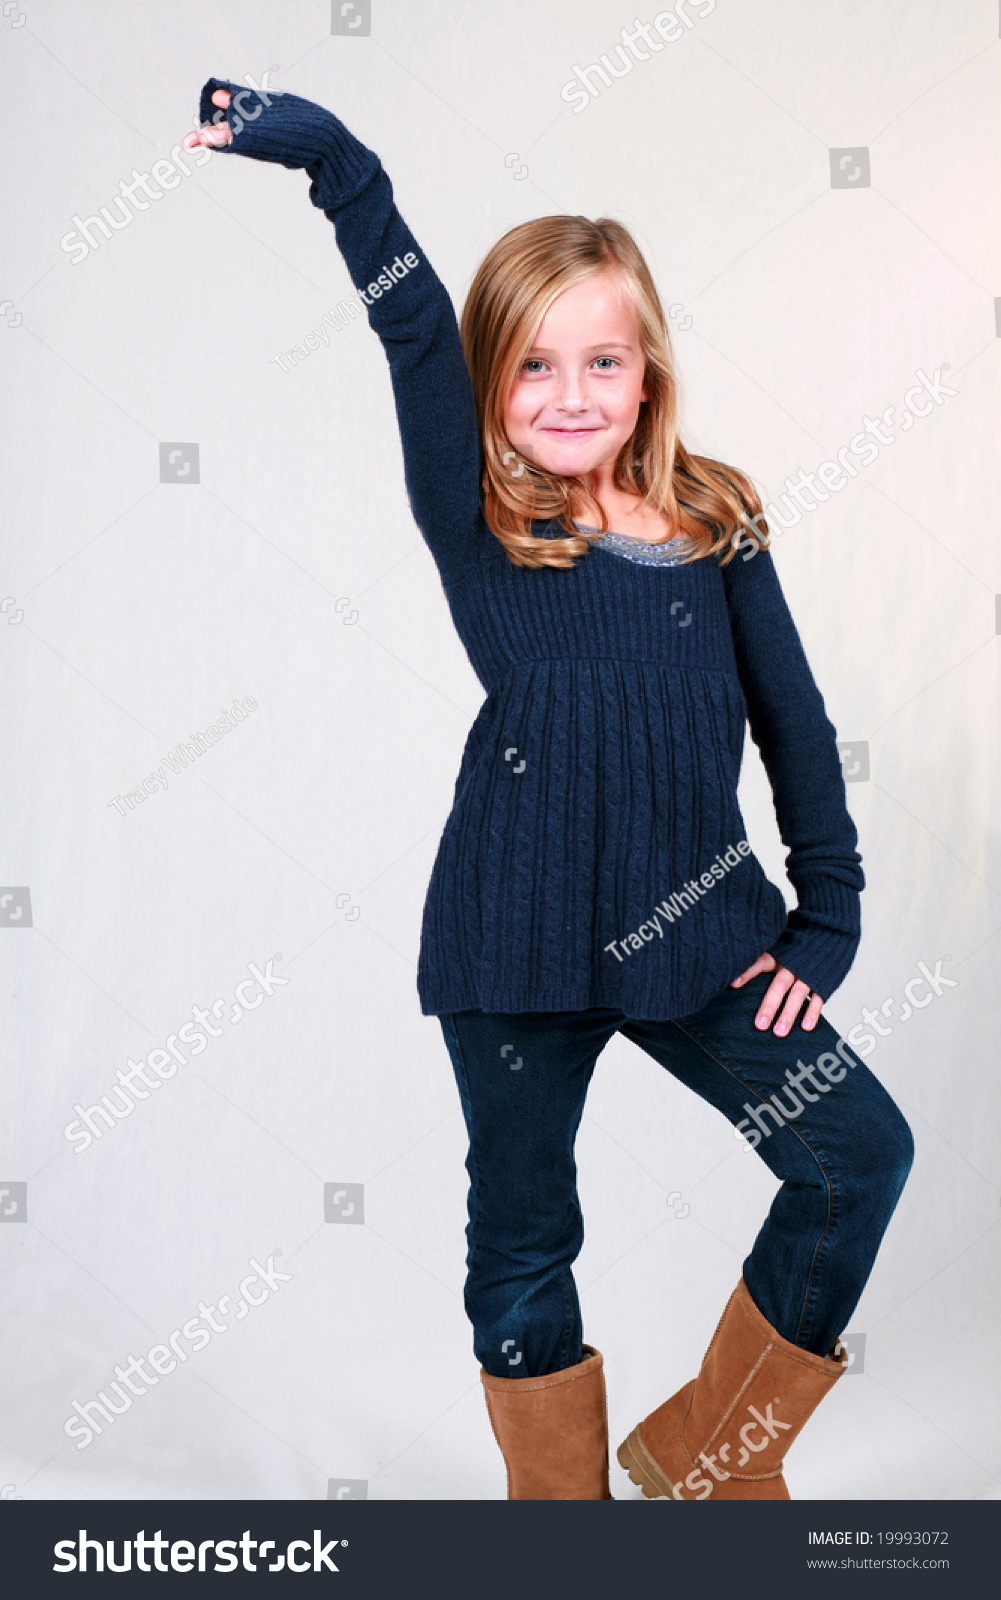 Cute Stock Photography: Cute Little Blond Girl Posing Like Stock Photo 19993072